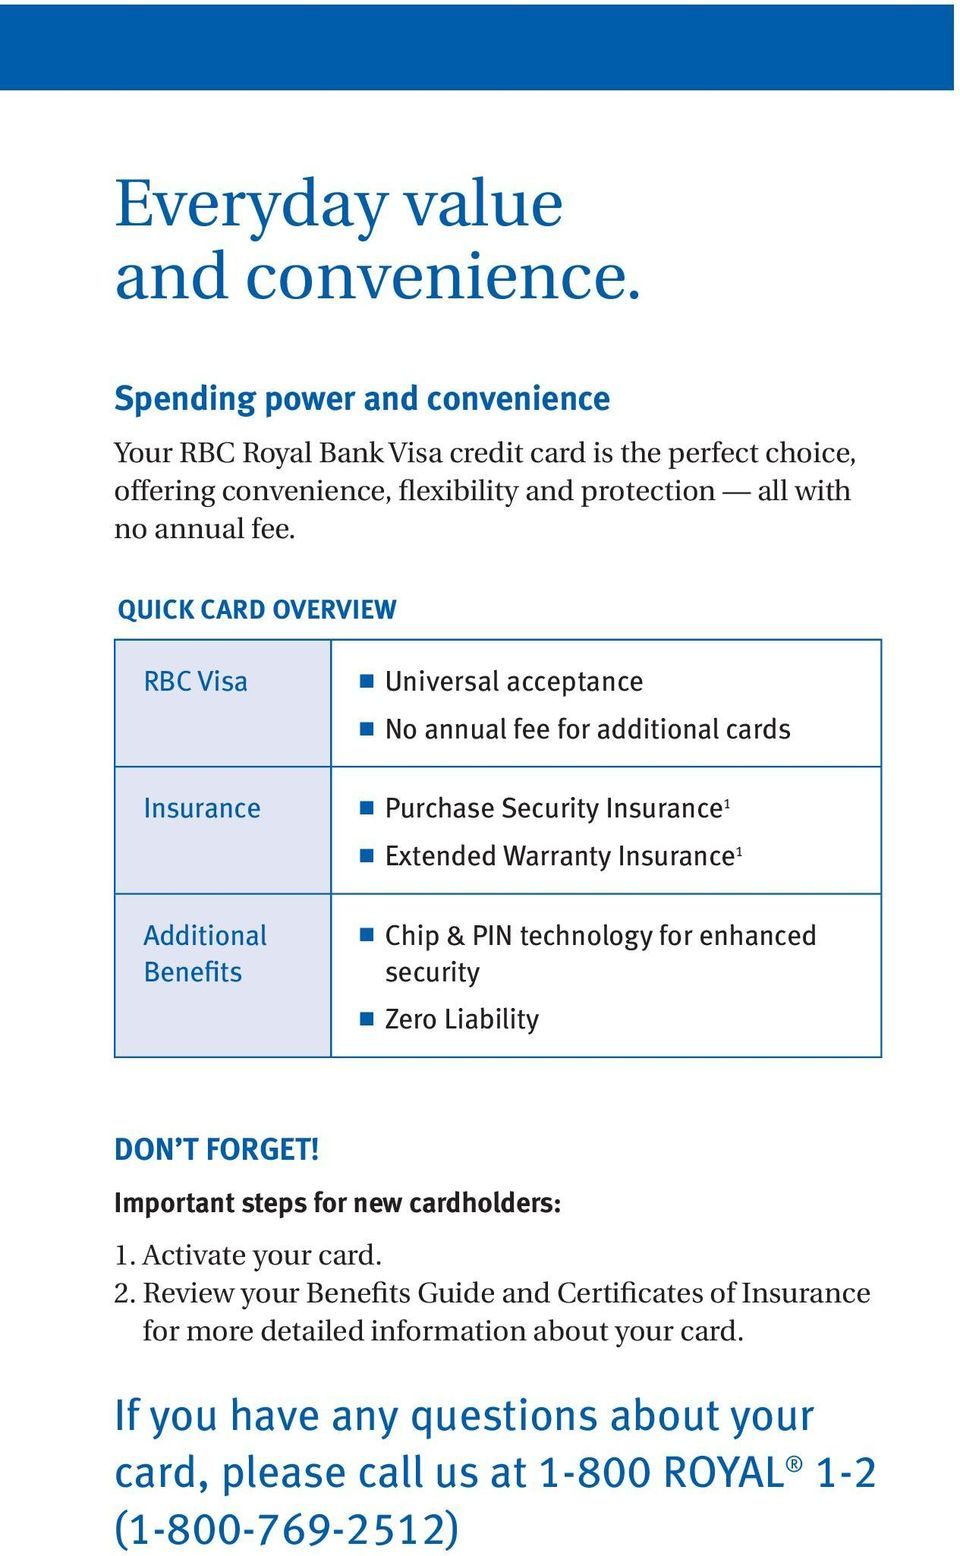 QUICK CARD OVERVIEW RBC Visa Uiversal acceptace No aual fee for additioal cards Isurace Purchase Security Isurace 1 Exteded Warraty Isurace 1 Additioal Beefits